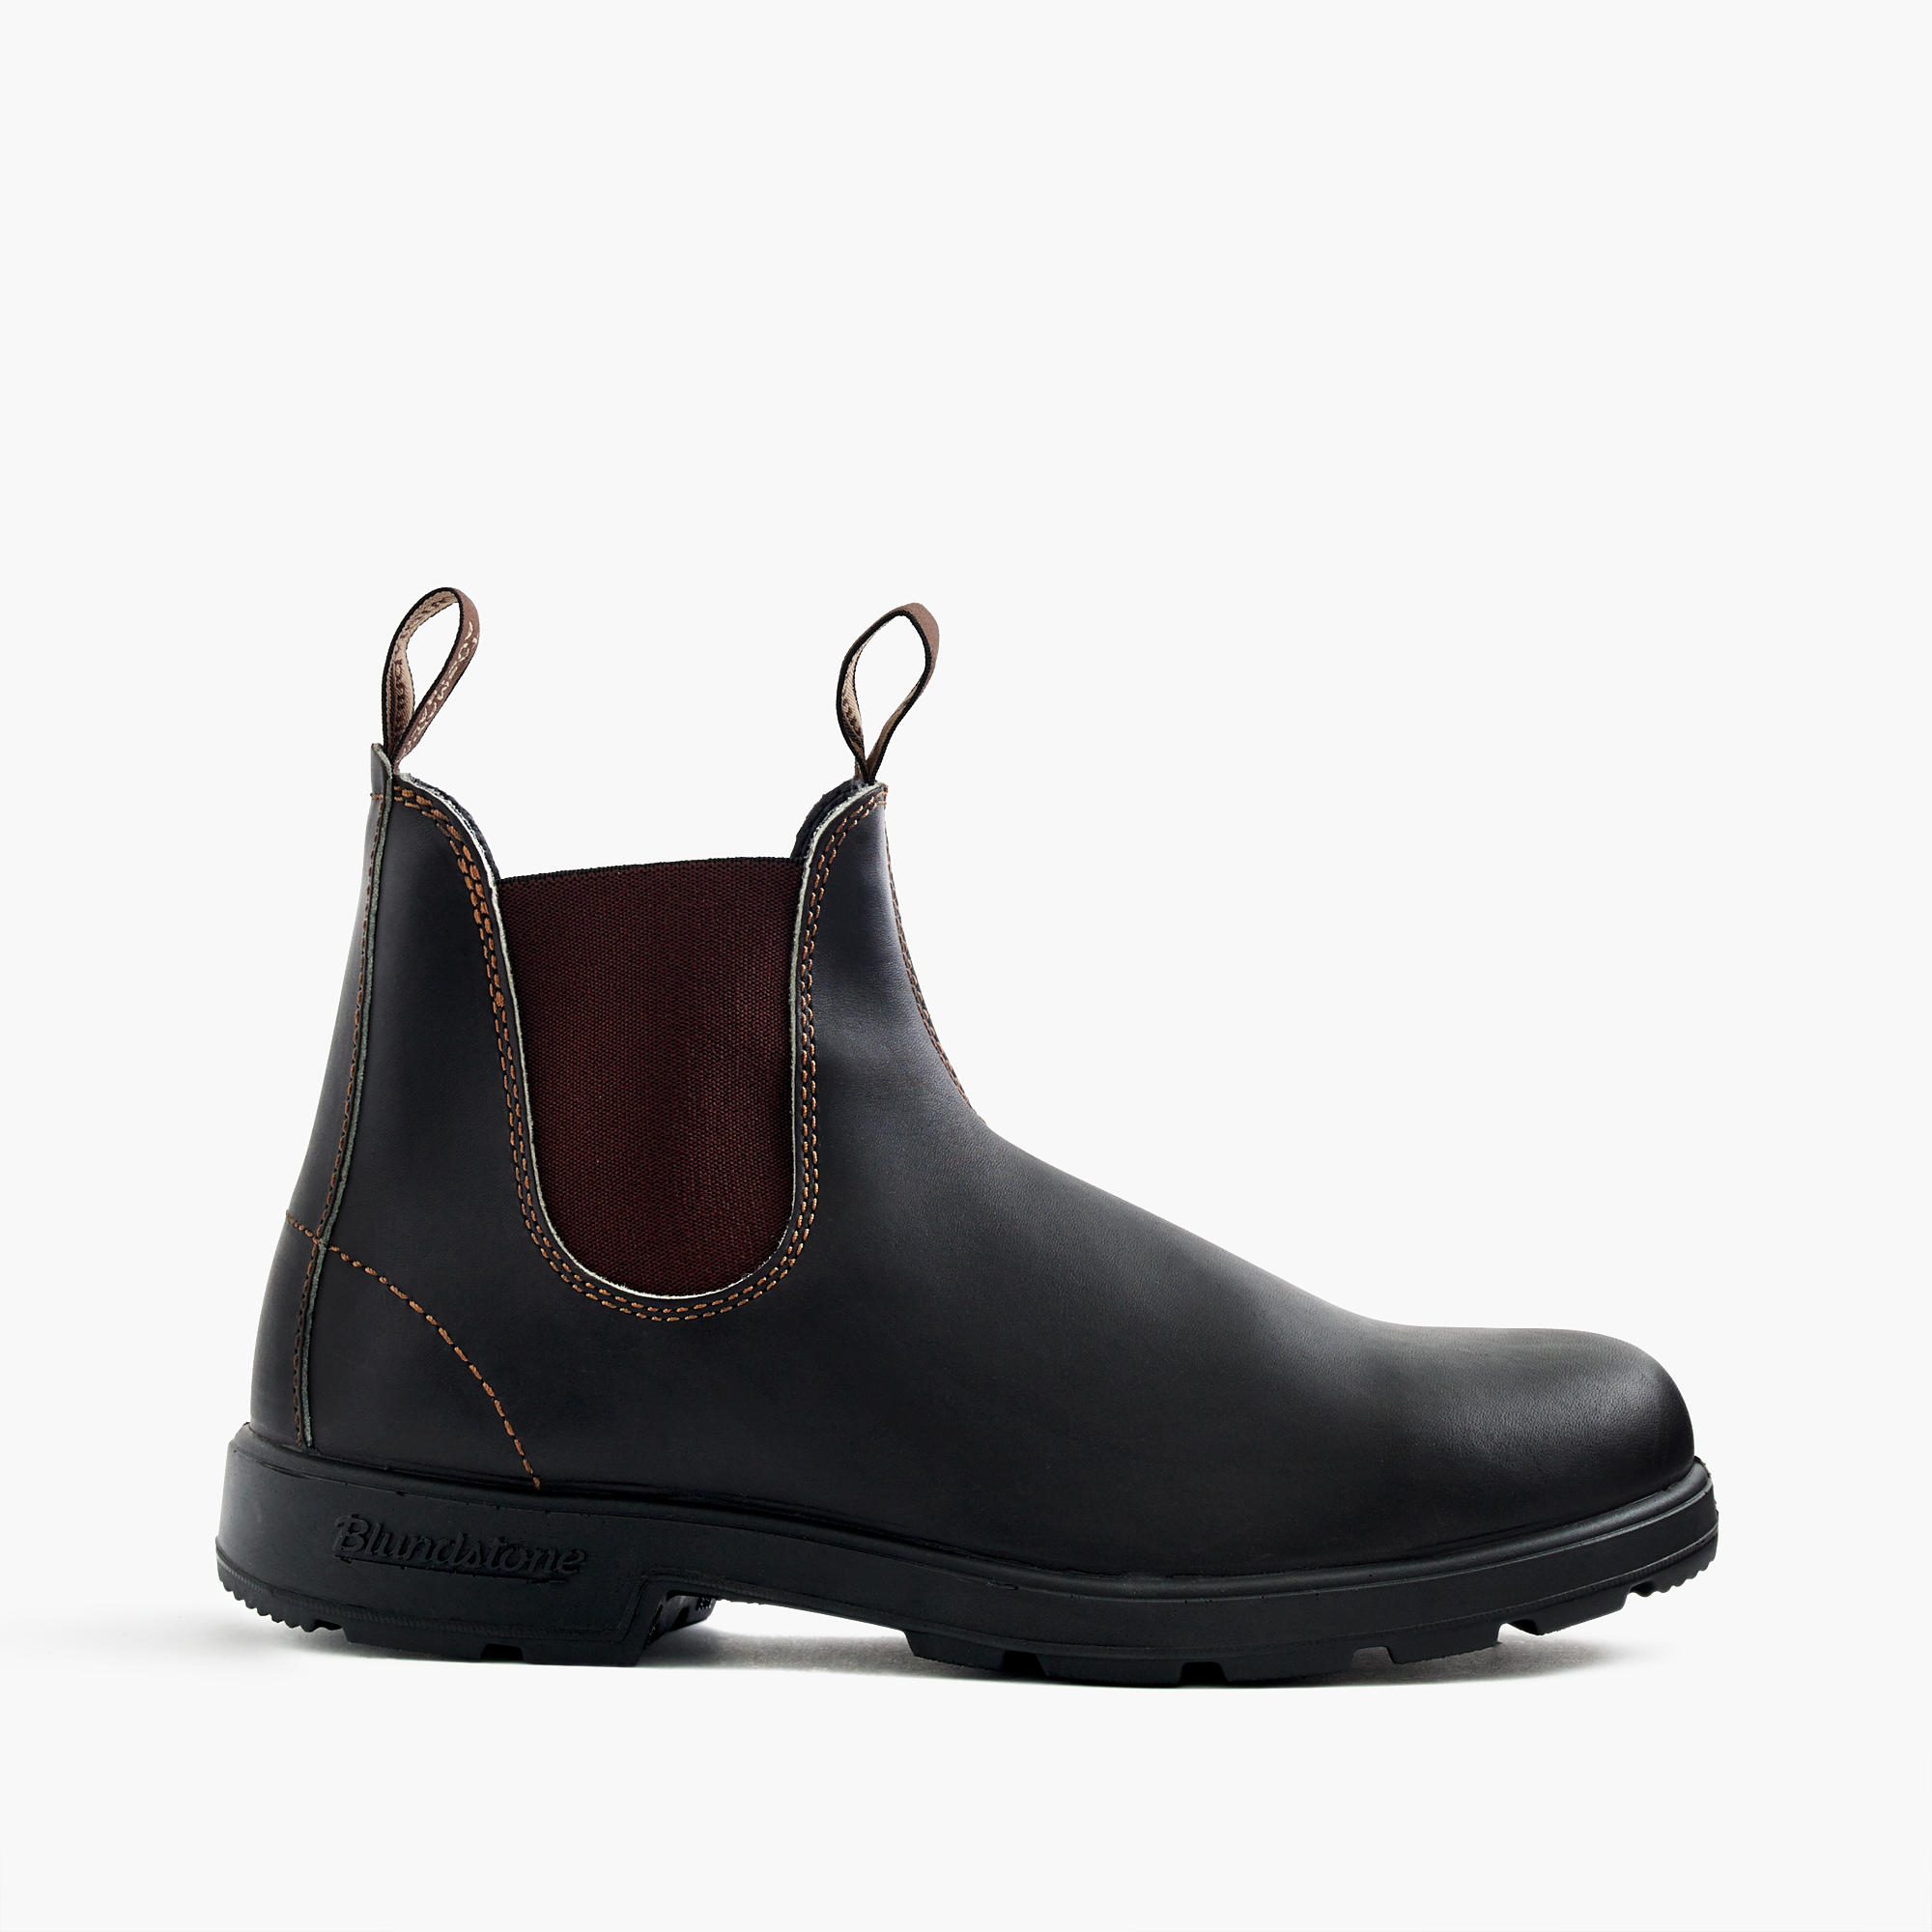 where to buy blundstones in sydney - photo#35